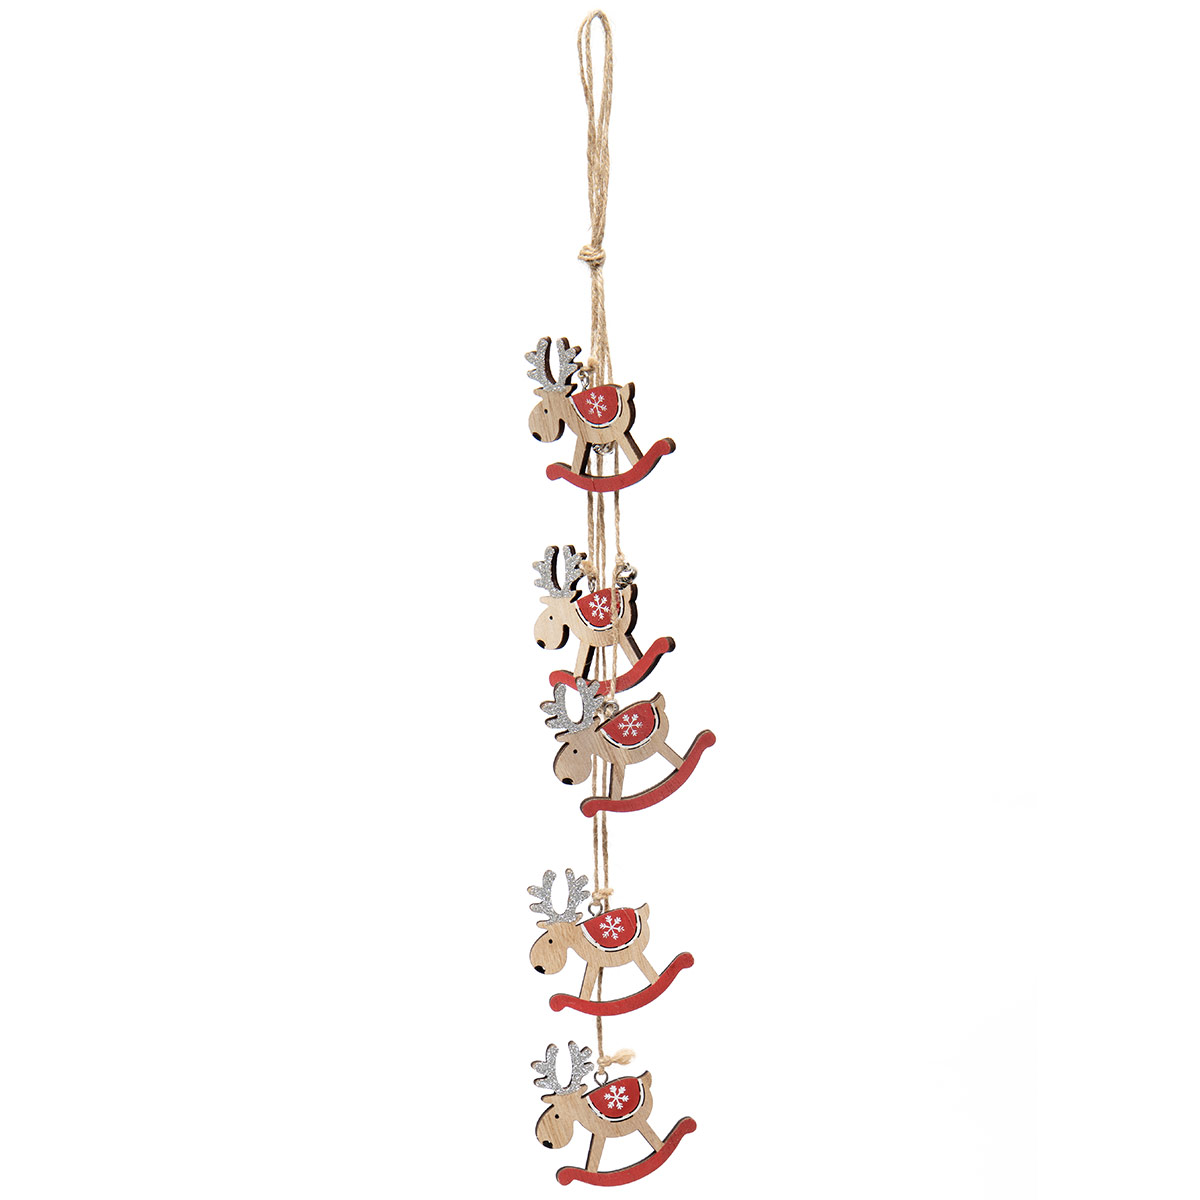 ROCKING MOOSE WOOD DANGLE ORNAMENT NATURAL/RED WITH